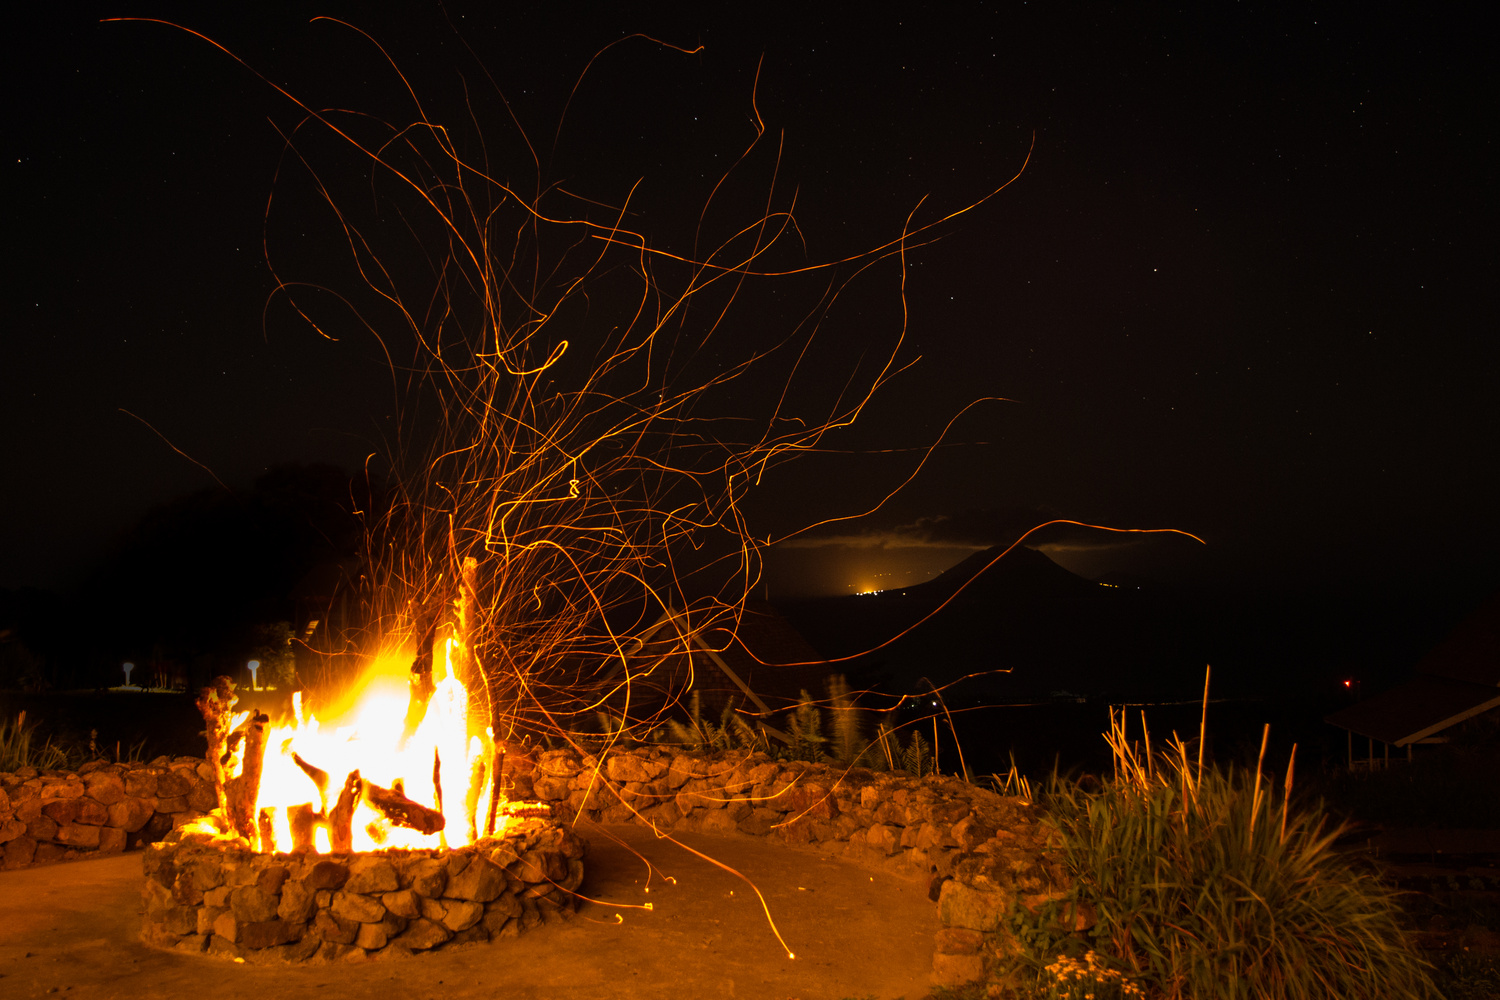 Bonfire by Eric Pennell